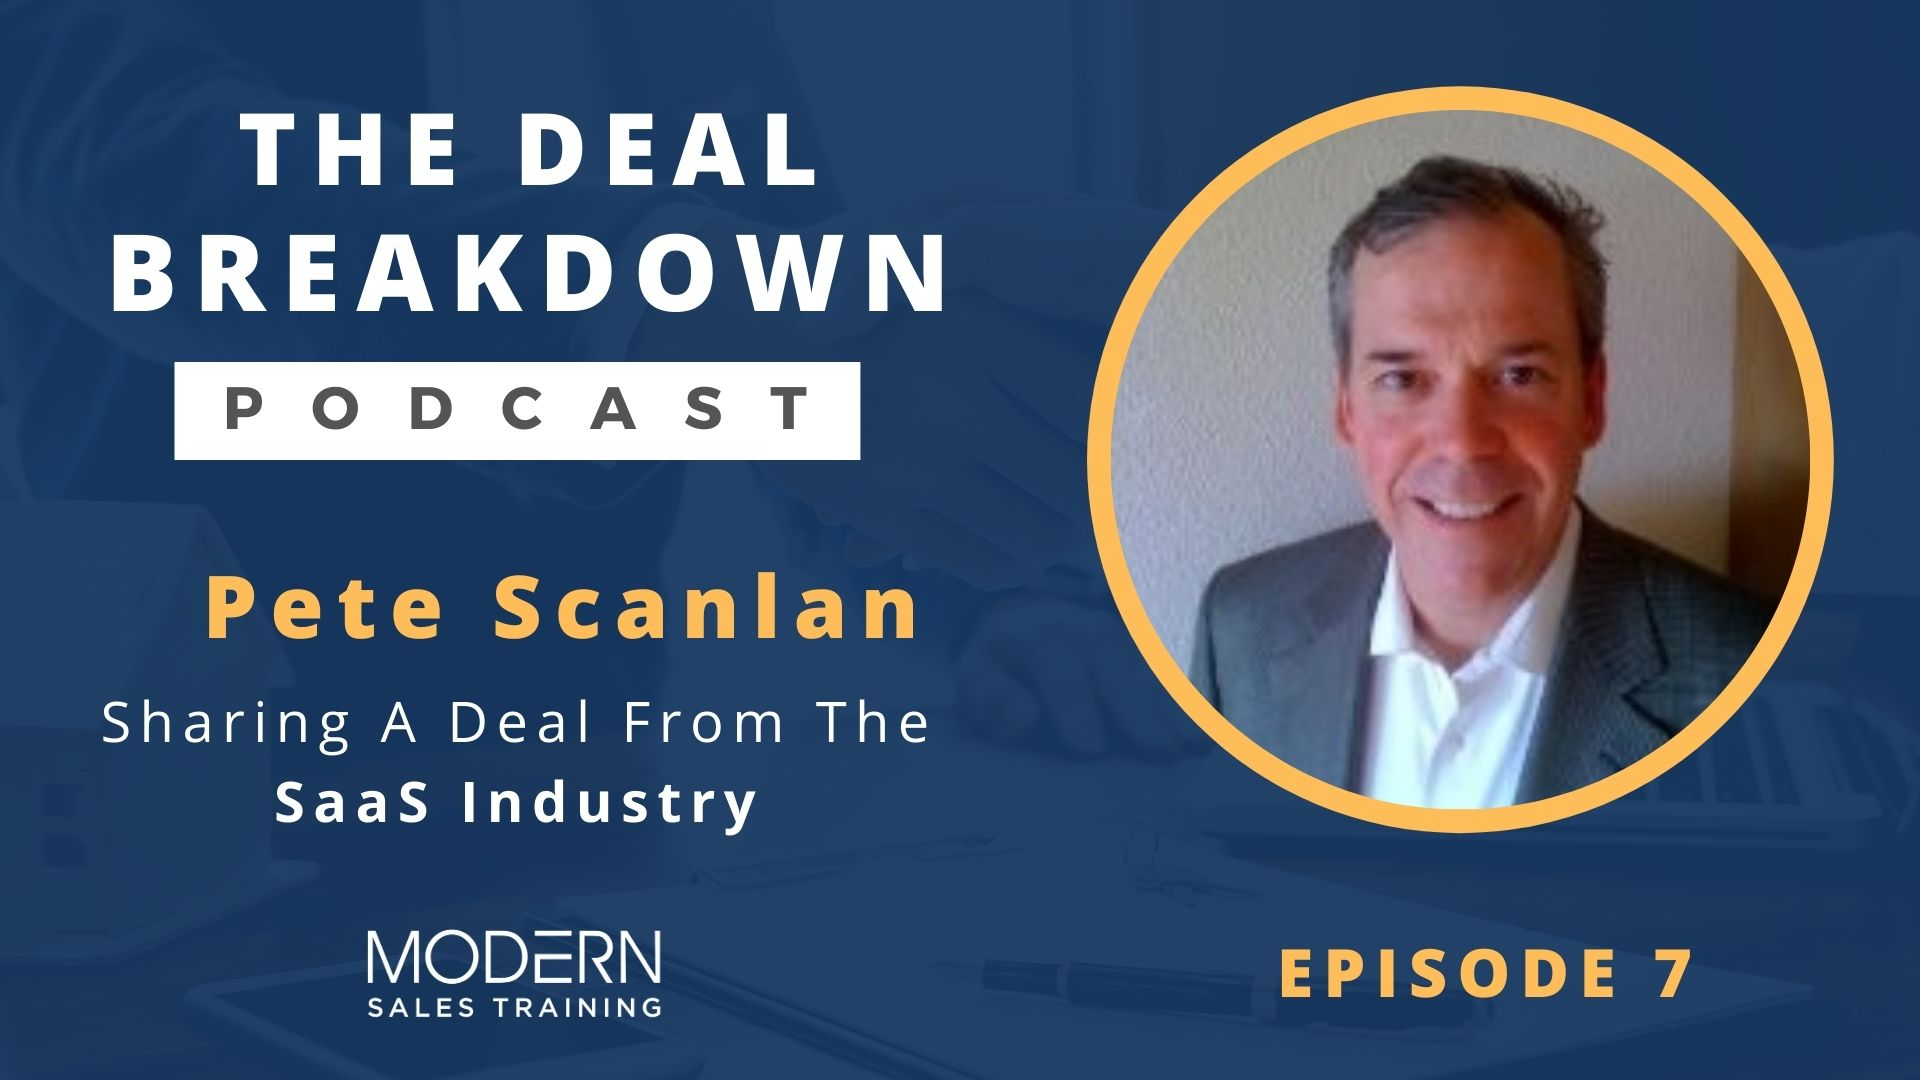 The-Deal-Breakdown-Podcast-Modern-Sales-Training-Pete-Scanlan